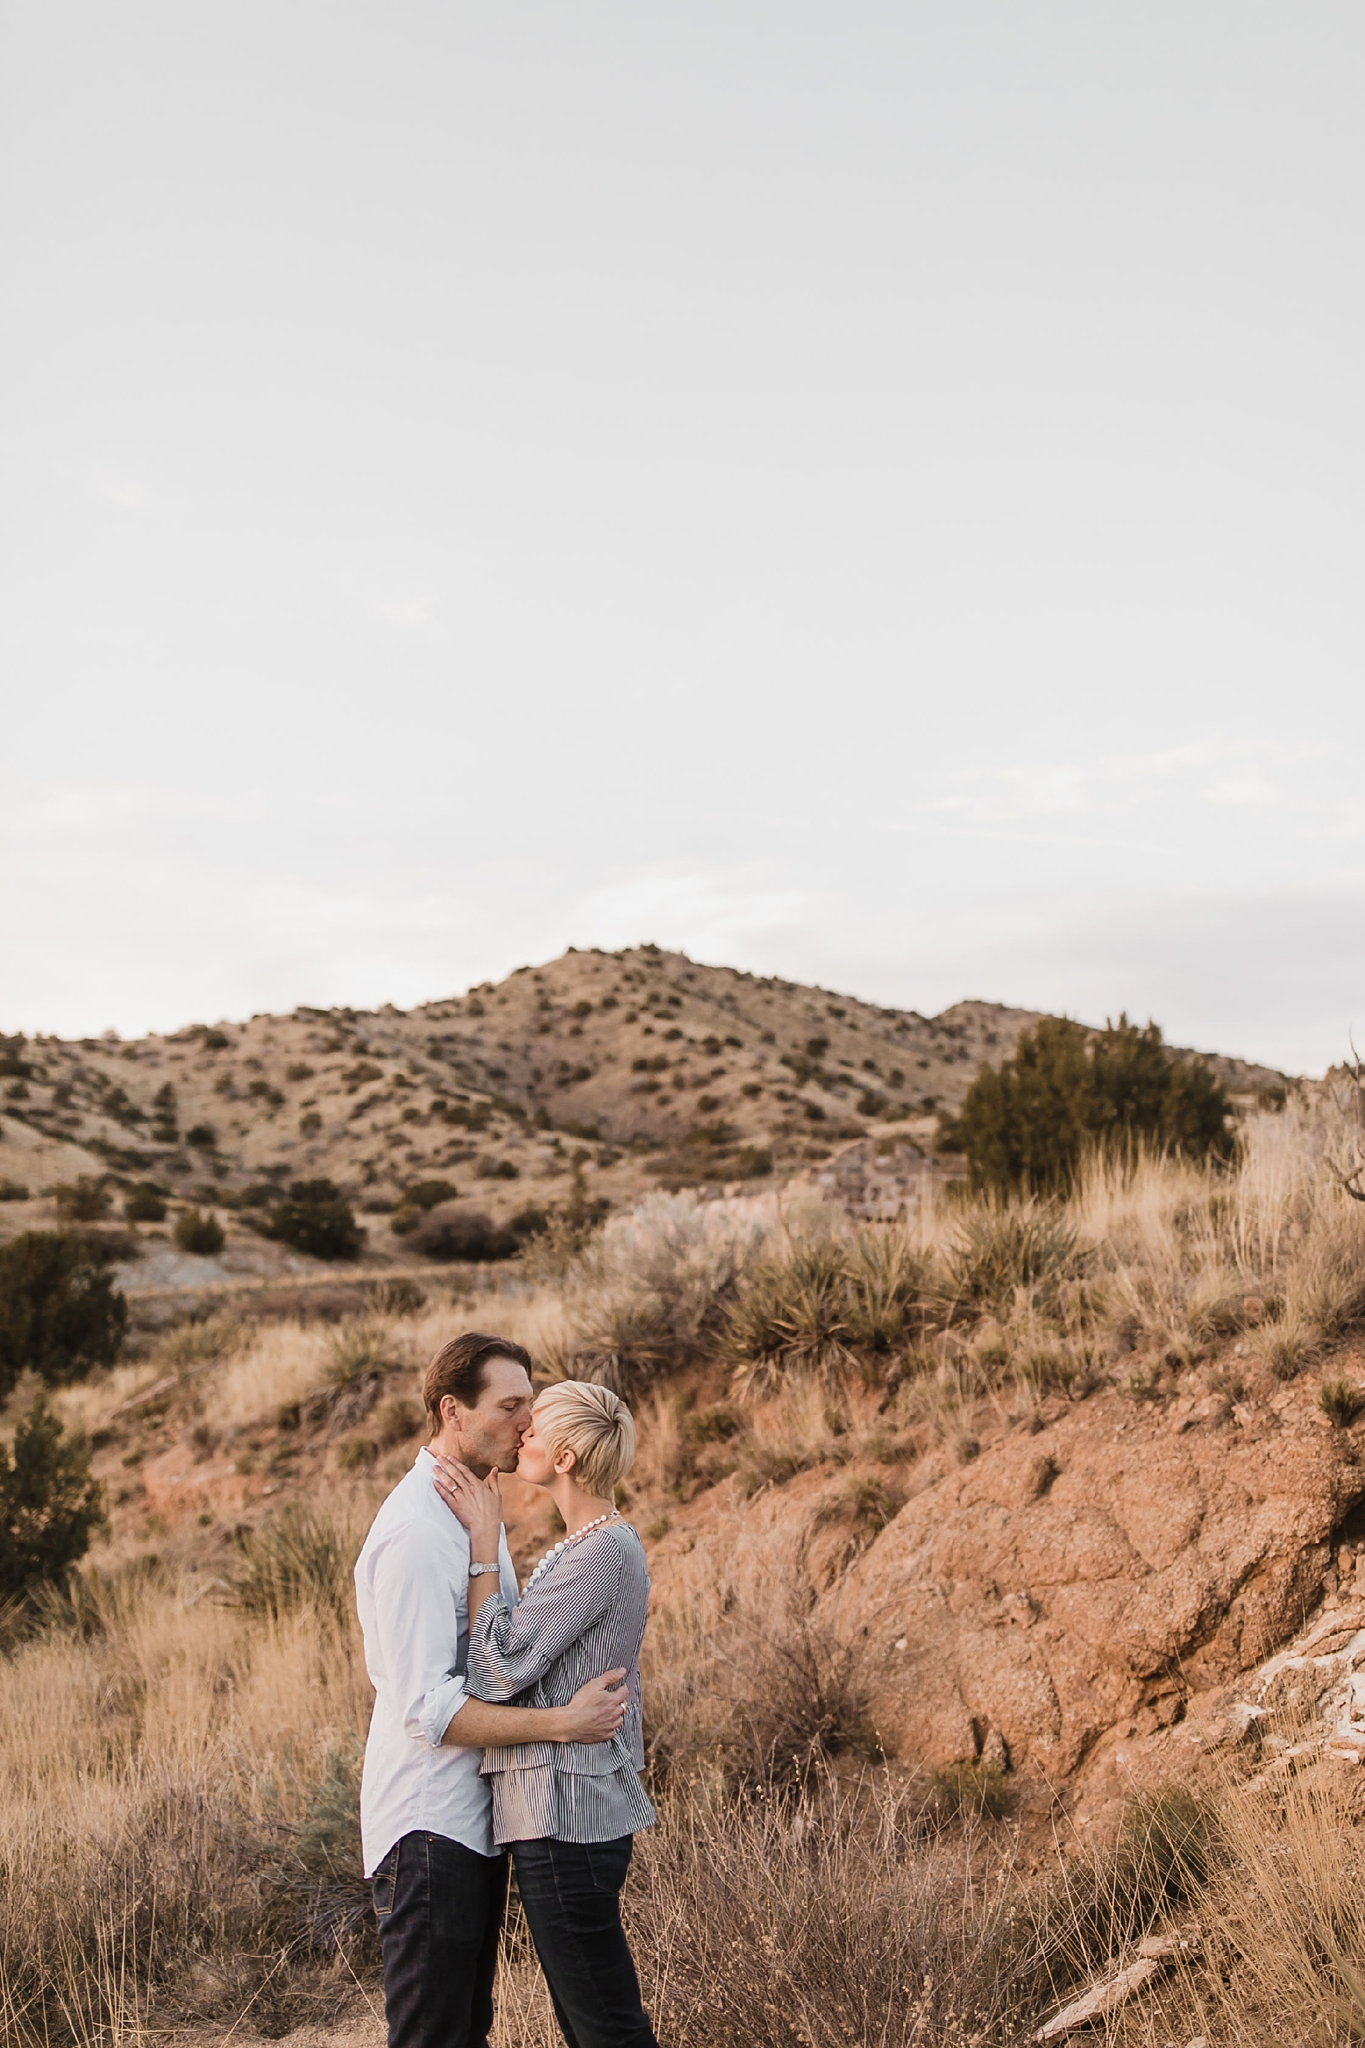 Alicia+lucia+photography+-+albuquerque+wedding+photographer+-+santa+fe+wedding+photography+-+new+mexico+wedding+photographer+-+new+mexico+wedding+-+engagement+-+new+mexico+engagement+-+desert+engagement+-+albuquerque+engagement_0024.jpg